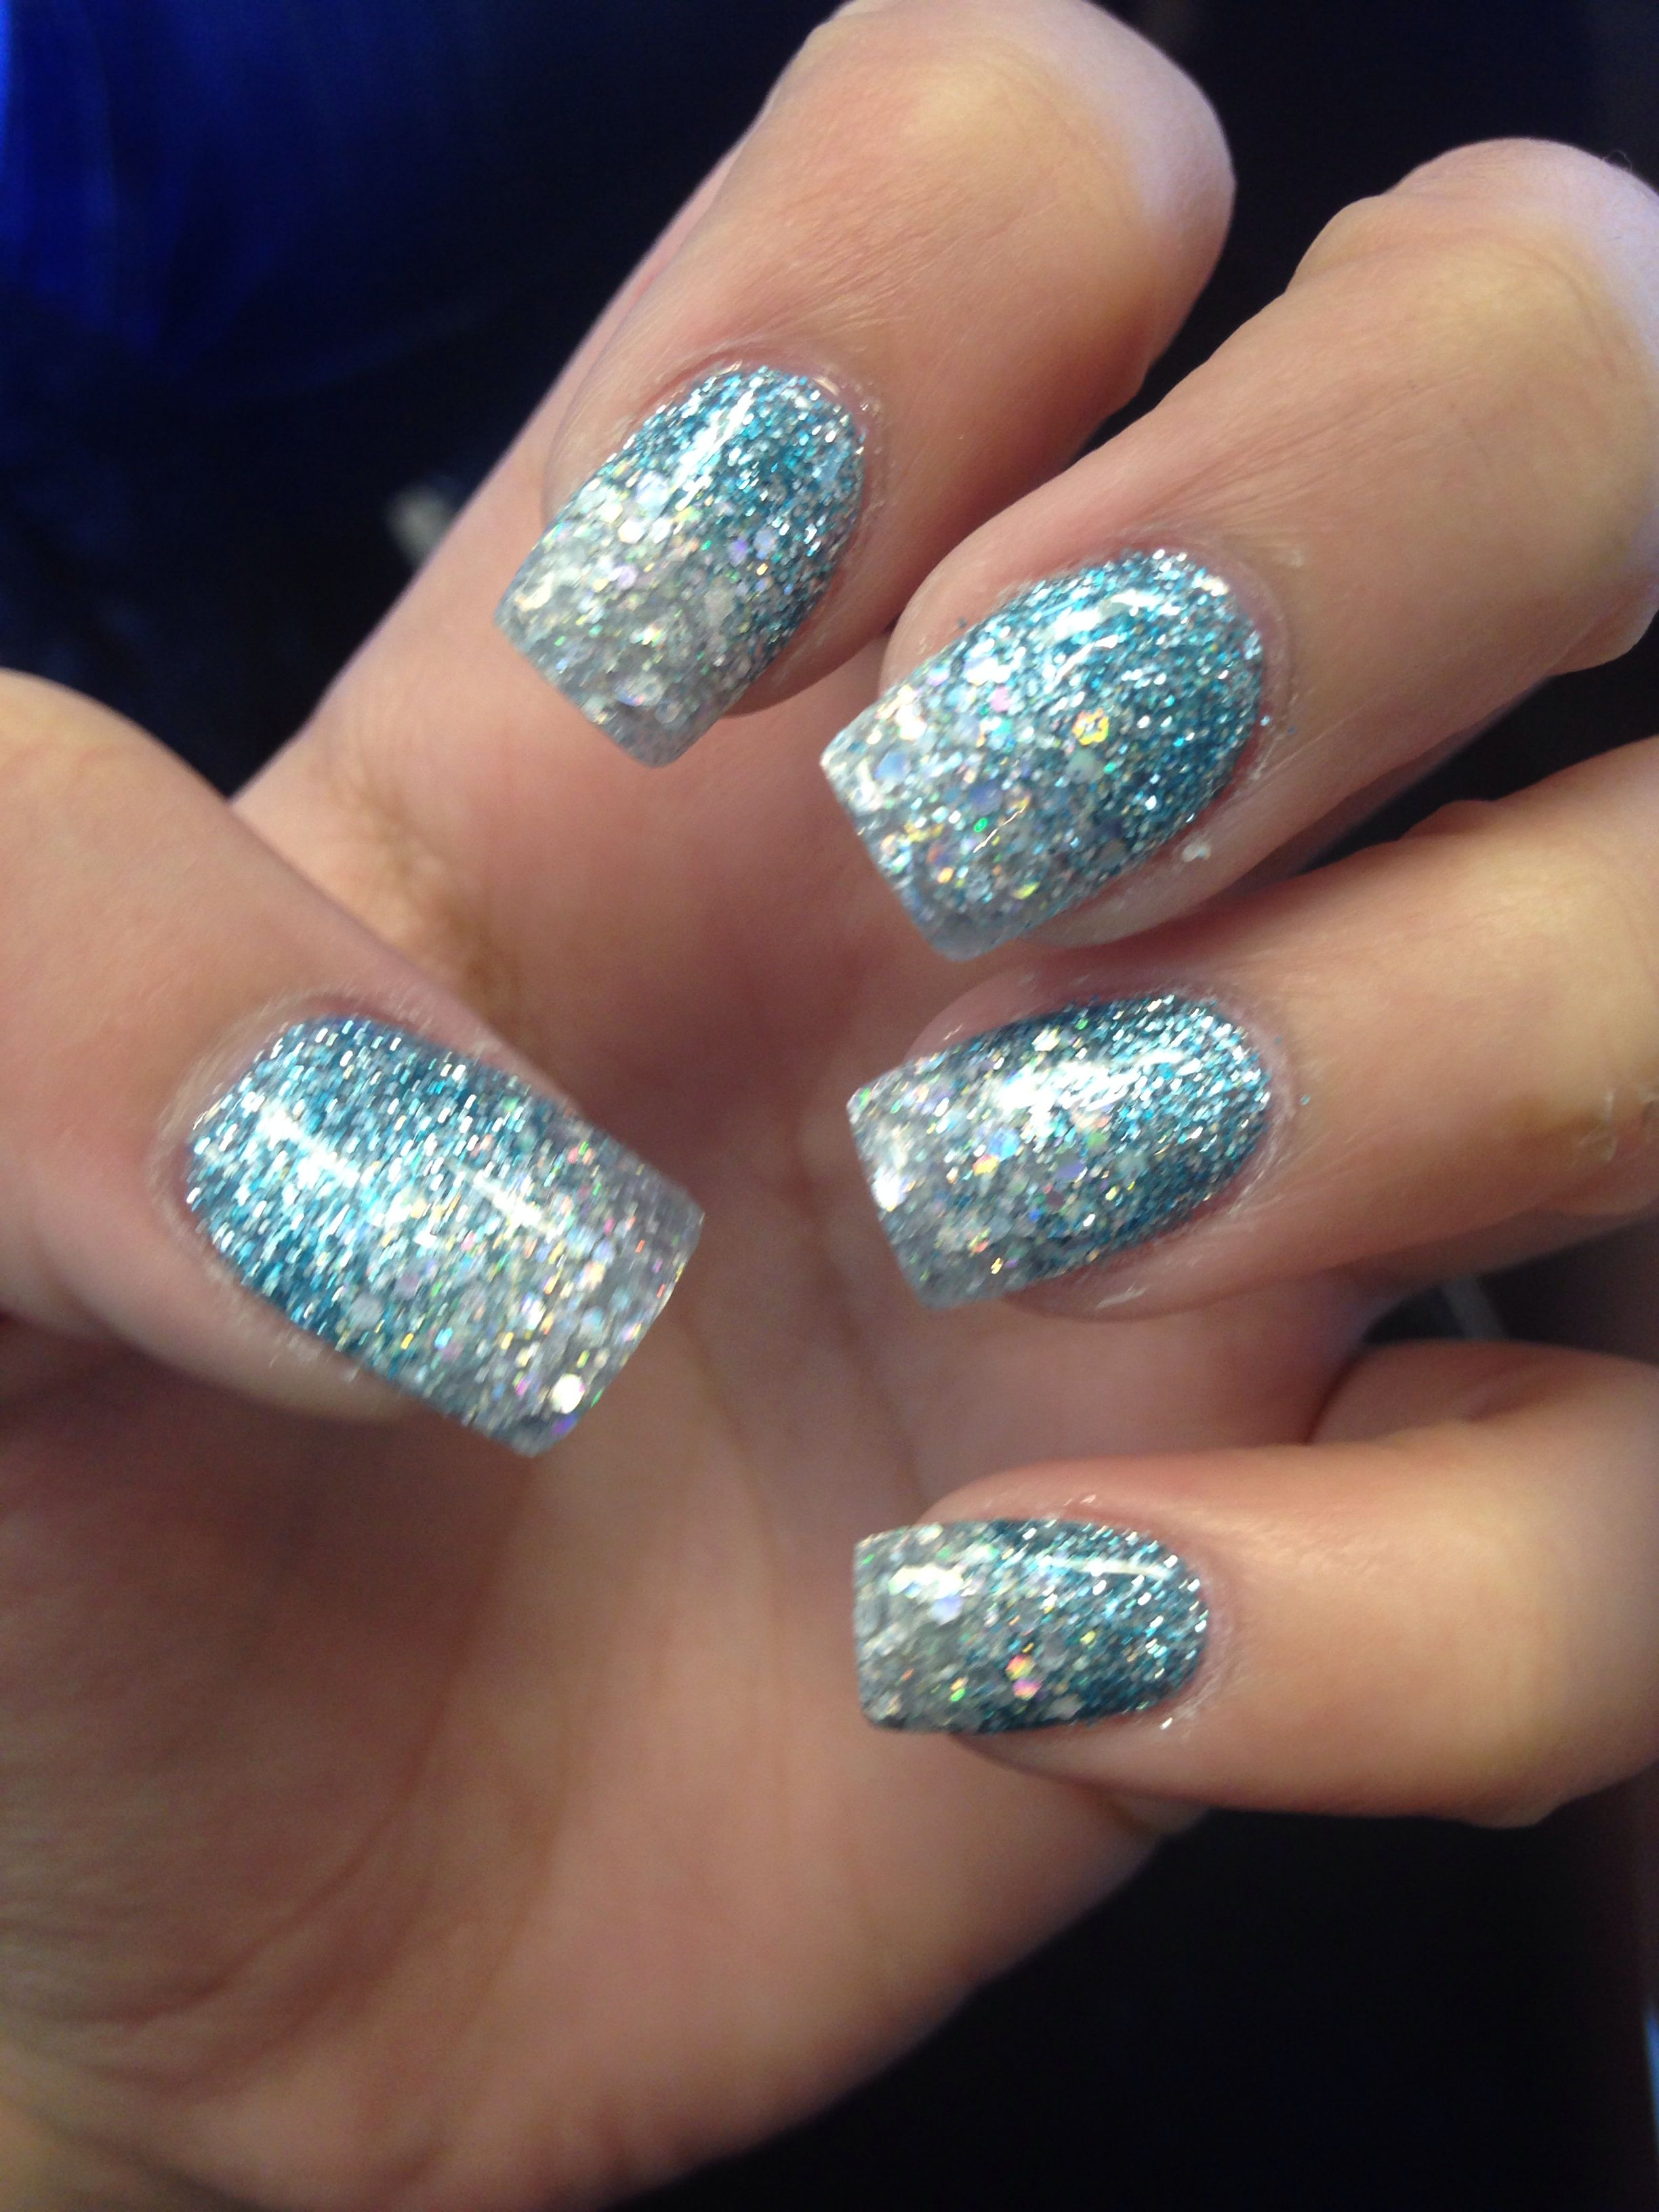 Blue silver glittery prom nails | nails | Pinterest | Prom ...